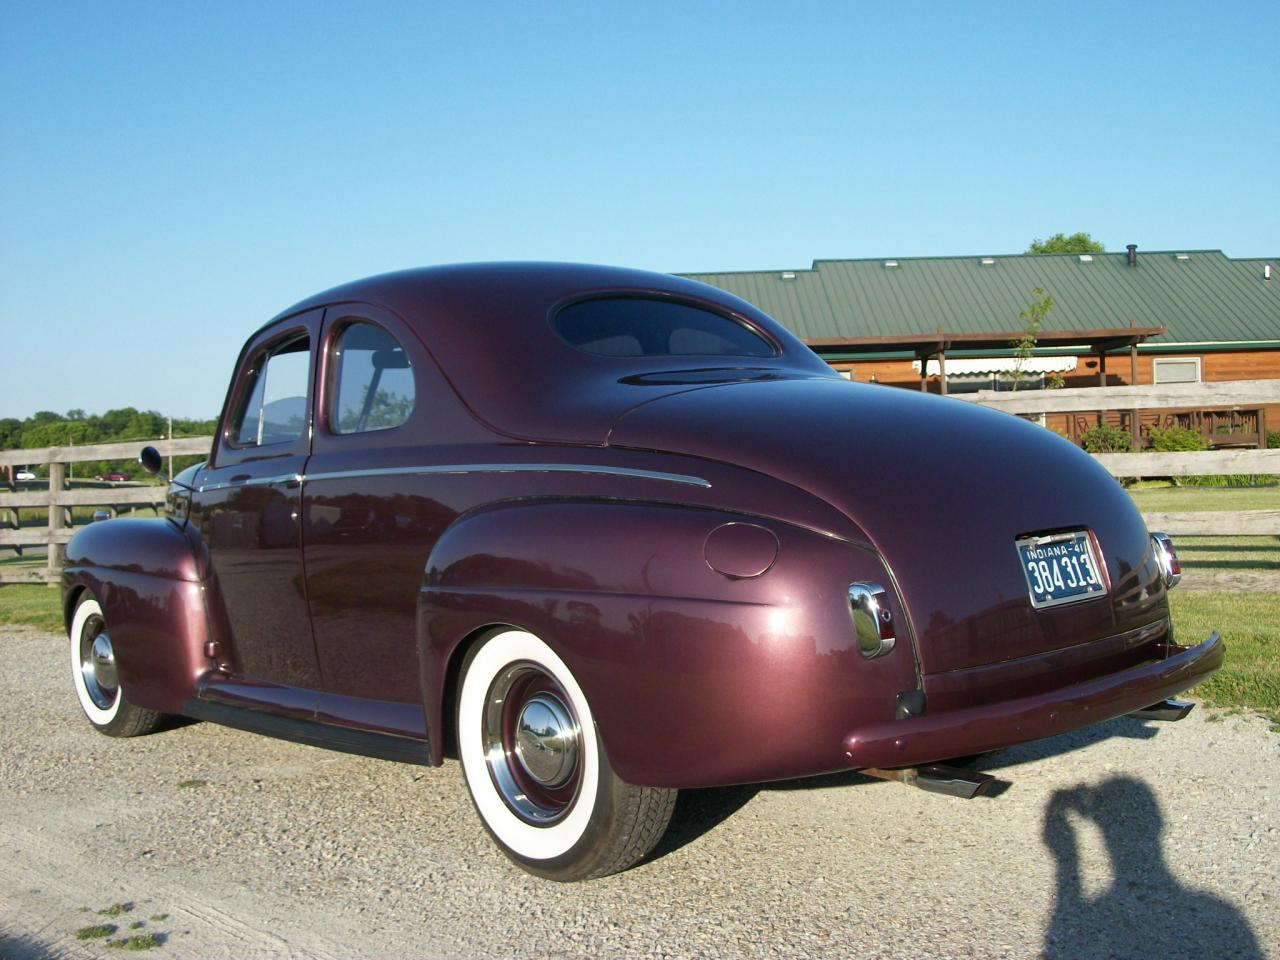 1941 Ford Coupe Parts For Sale Truck Front Fenders Cust1941